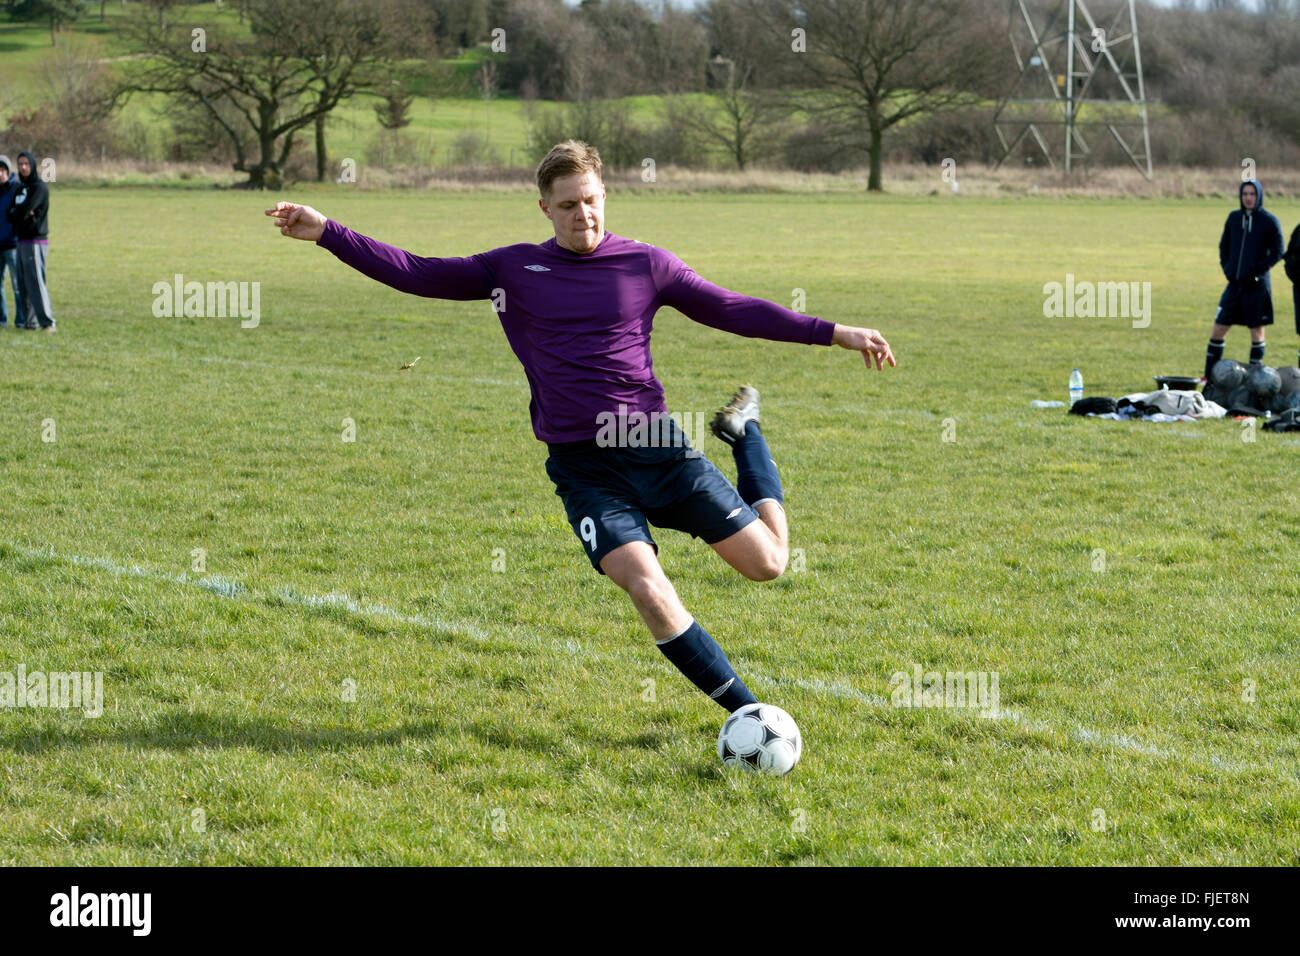 Sunday League football, player kicking ball - Stock Image